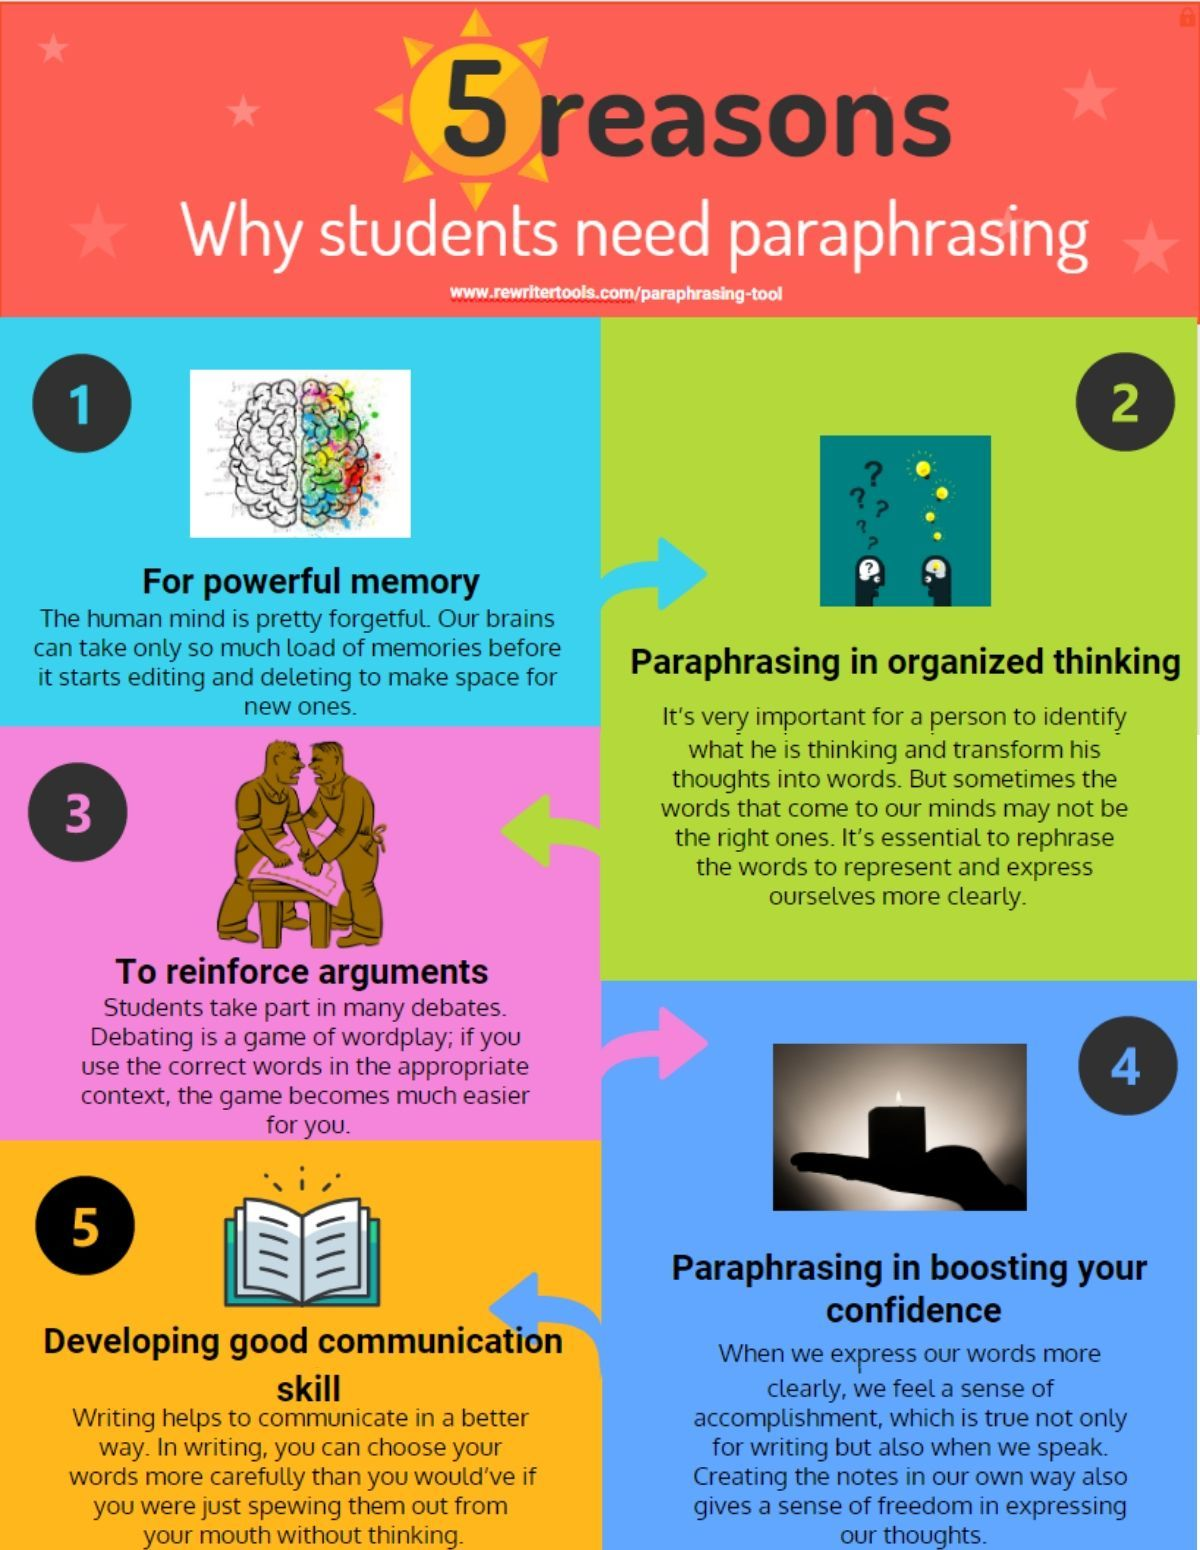 5 Reason Why Student Need Paraphrasing Good Communication Skill Word To Use